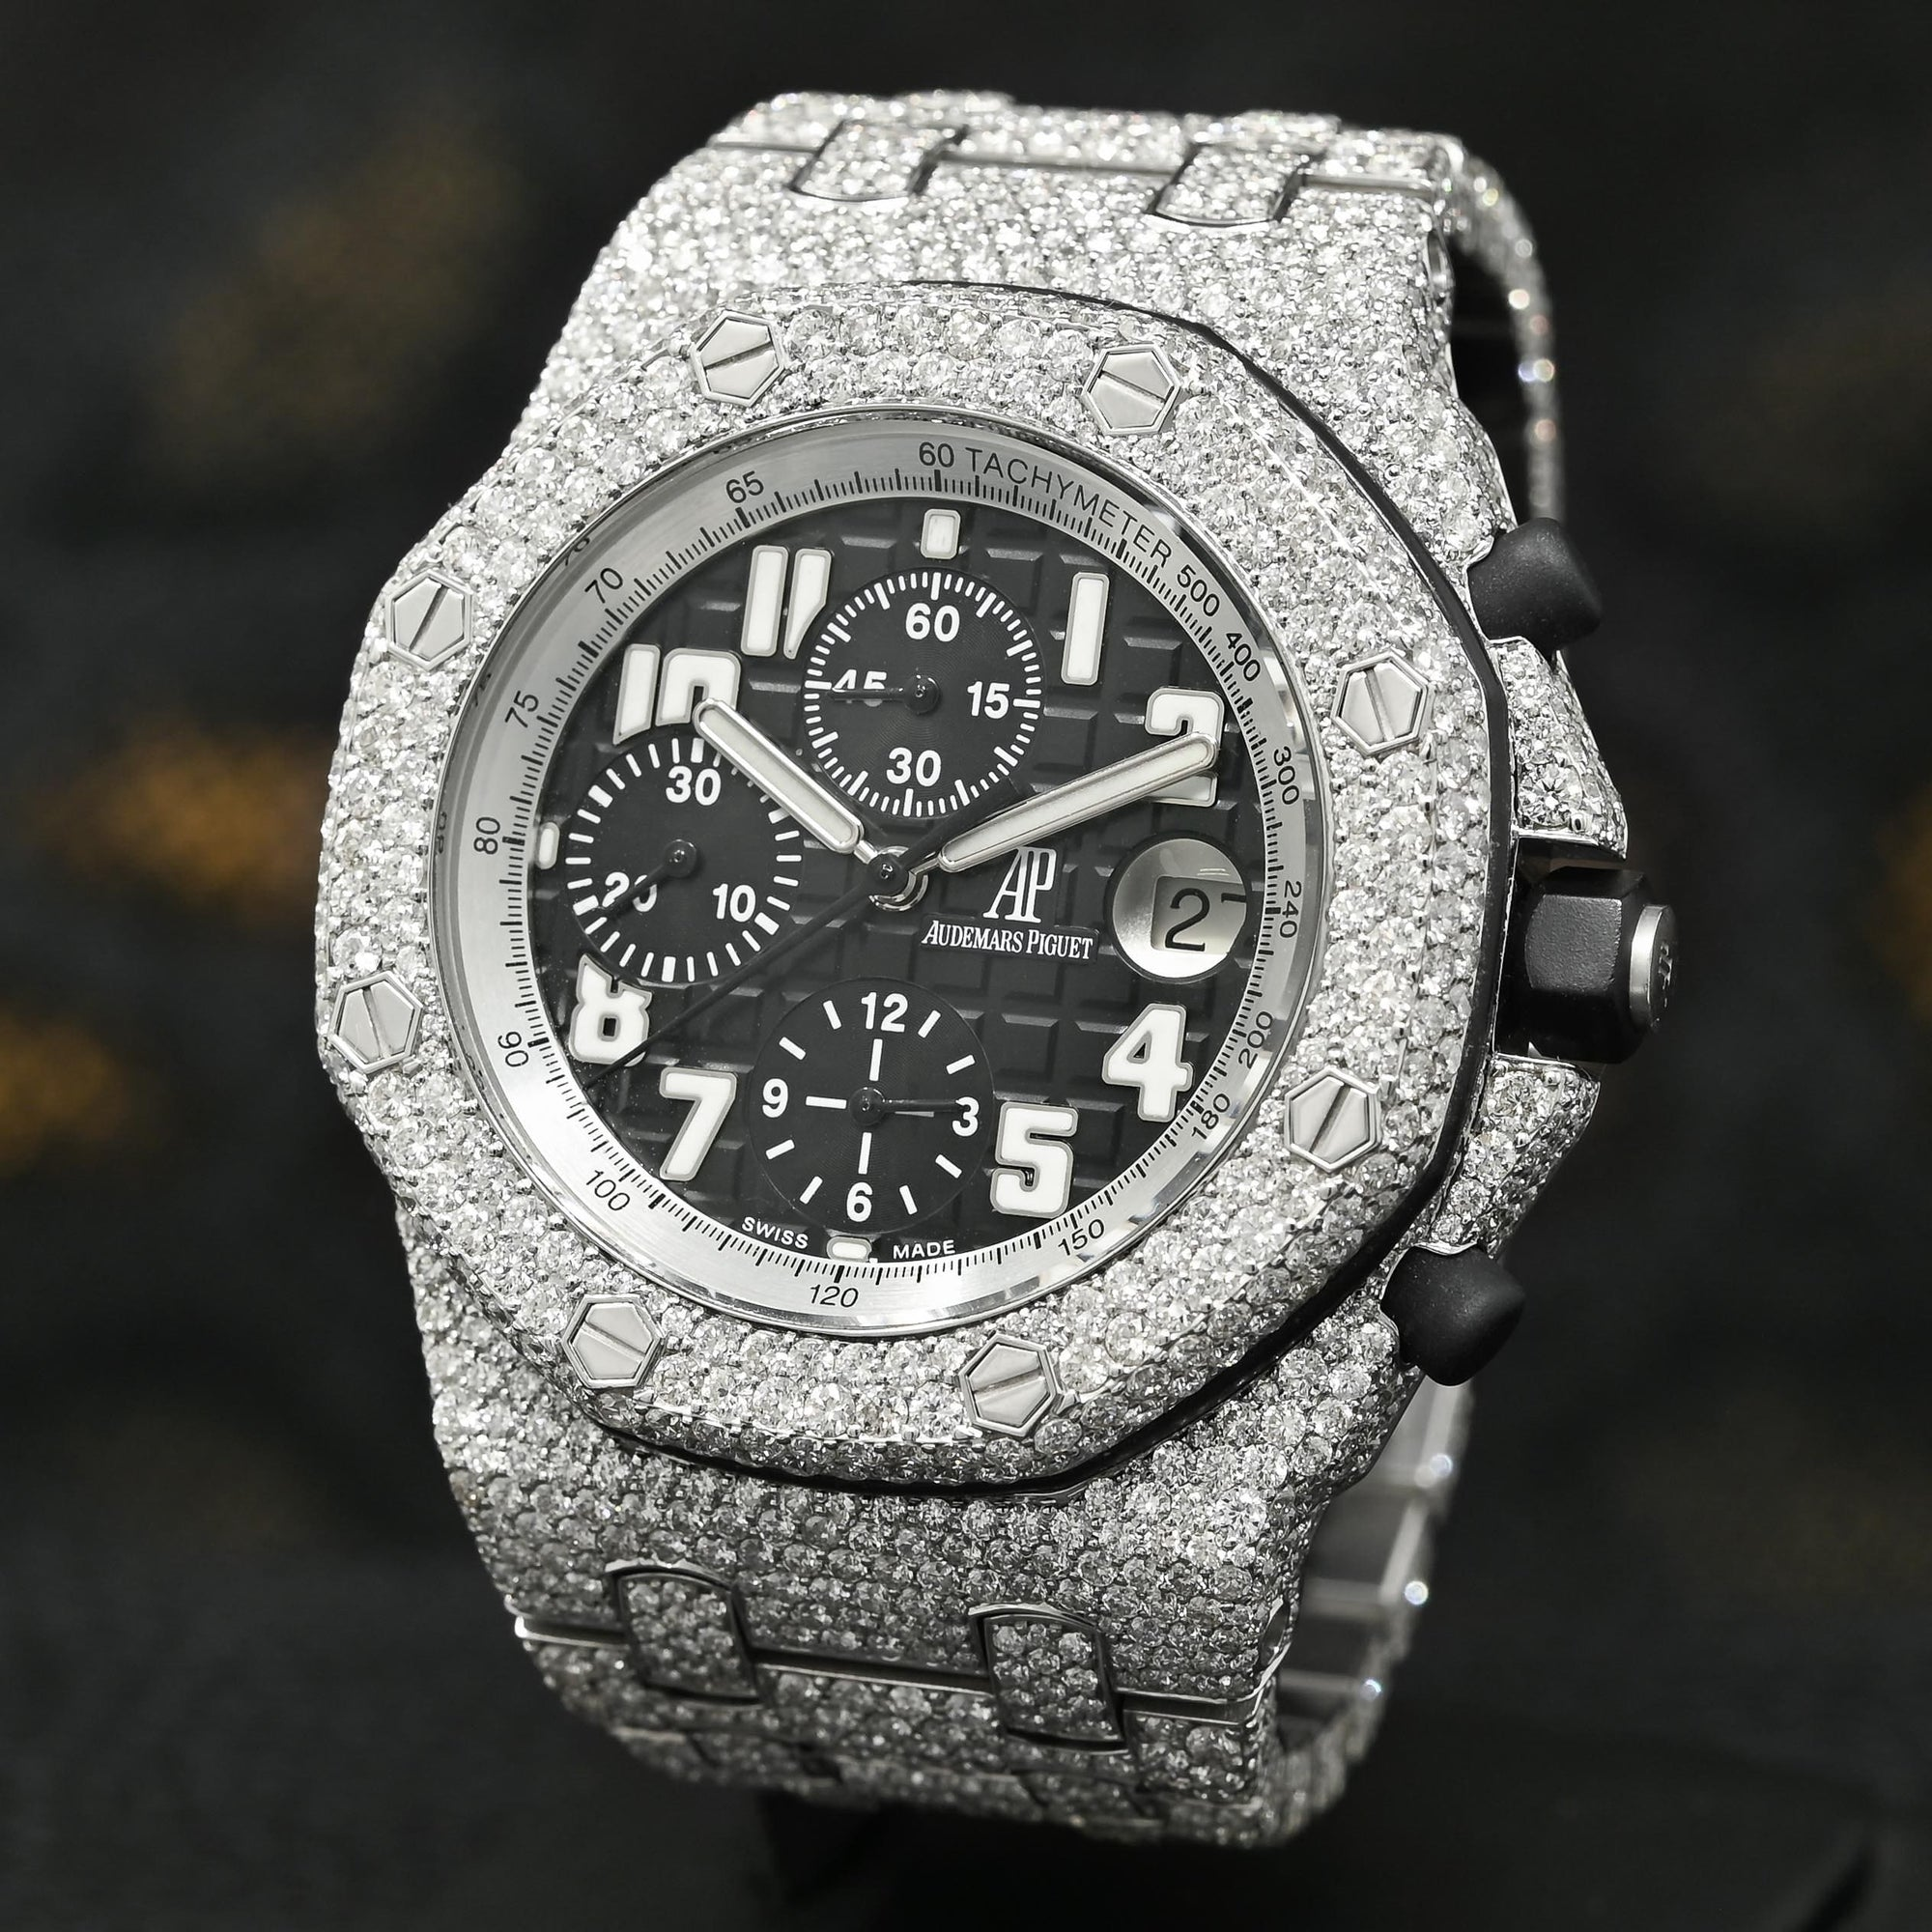 Montre Audemars Piguet | Montre Homme 42mm Audemars Piguet Offshore - Black Iced Stainless